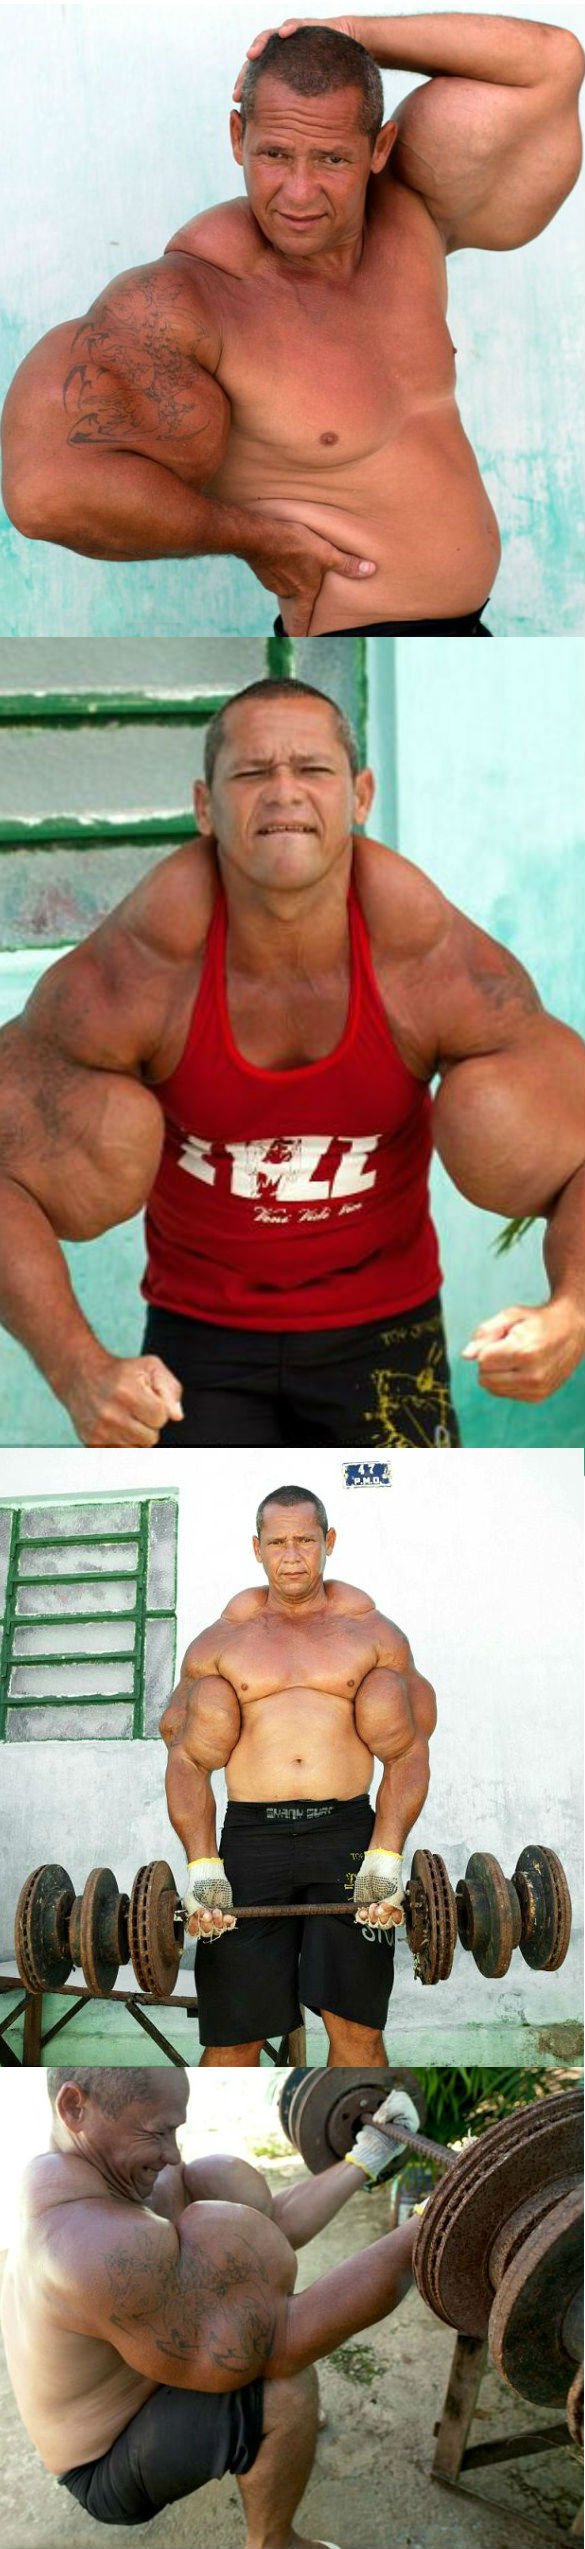 z1 Body Builders wtf NeSFW